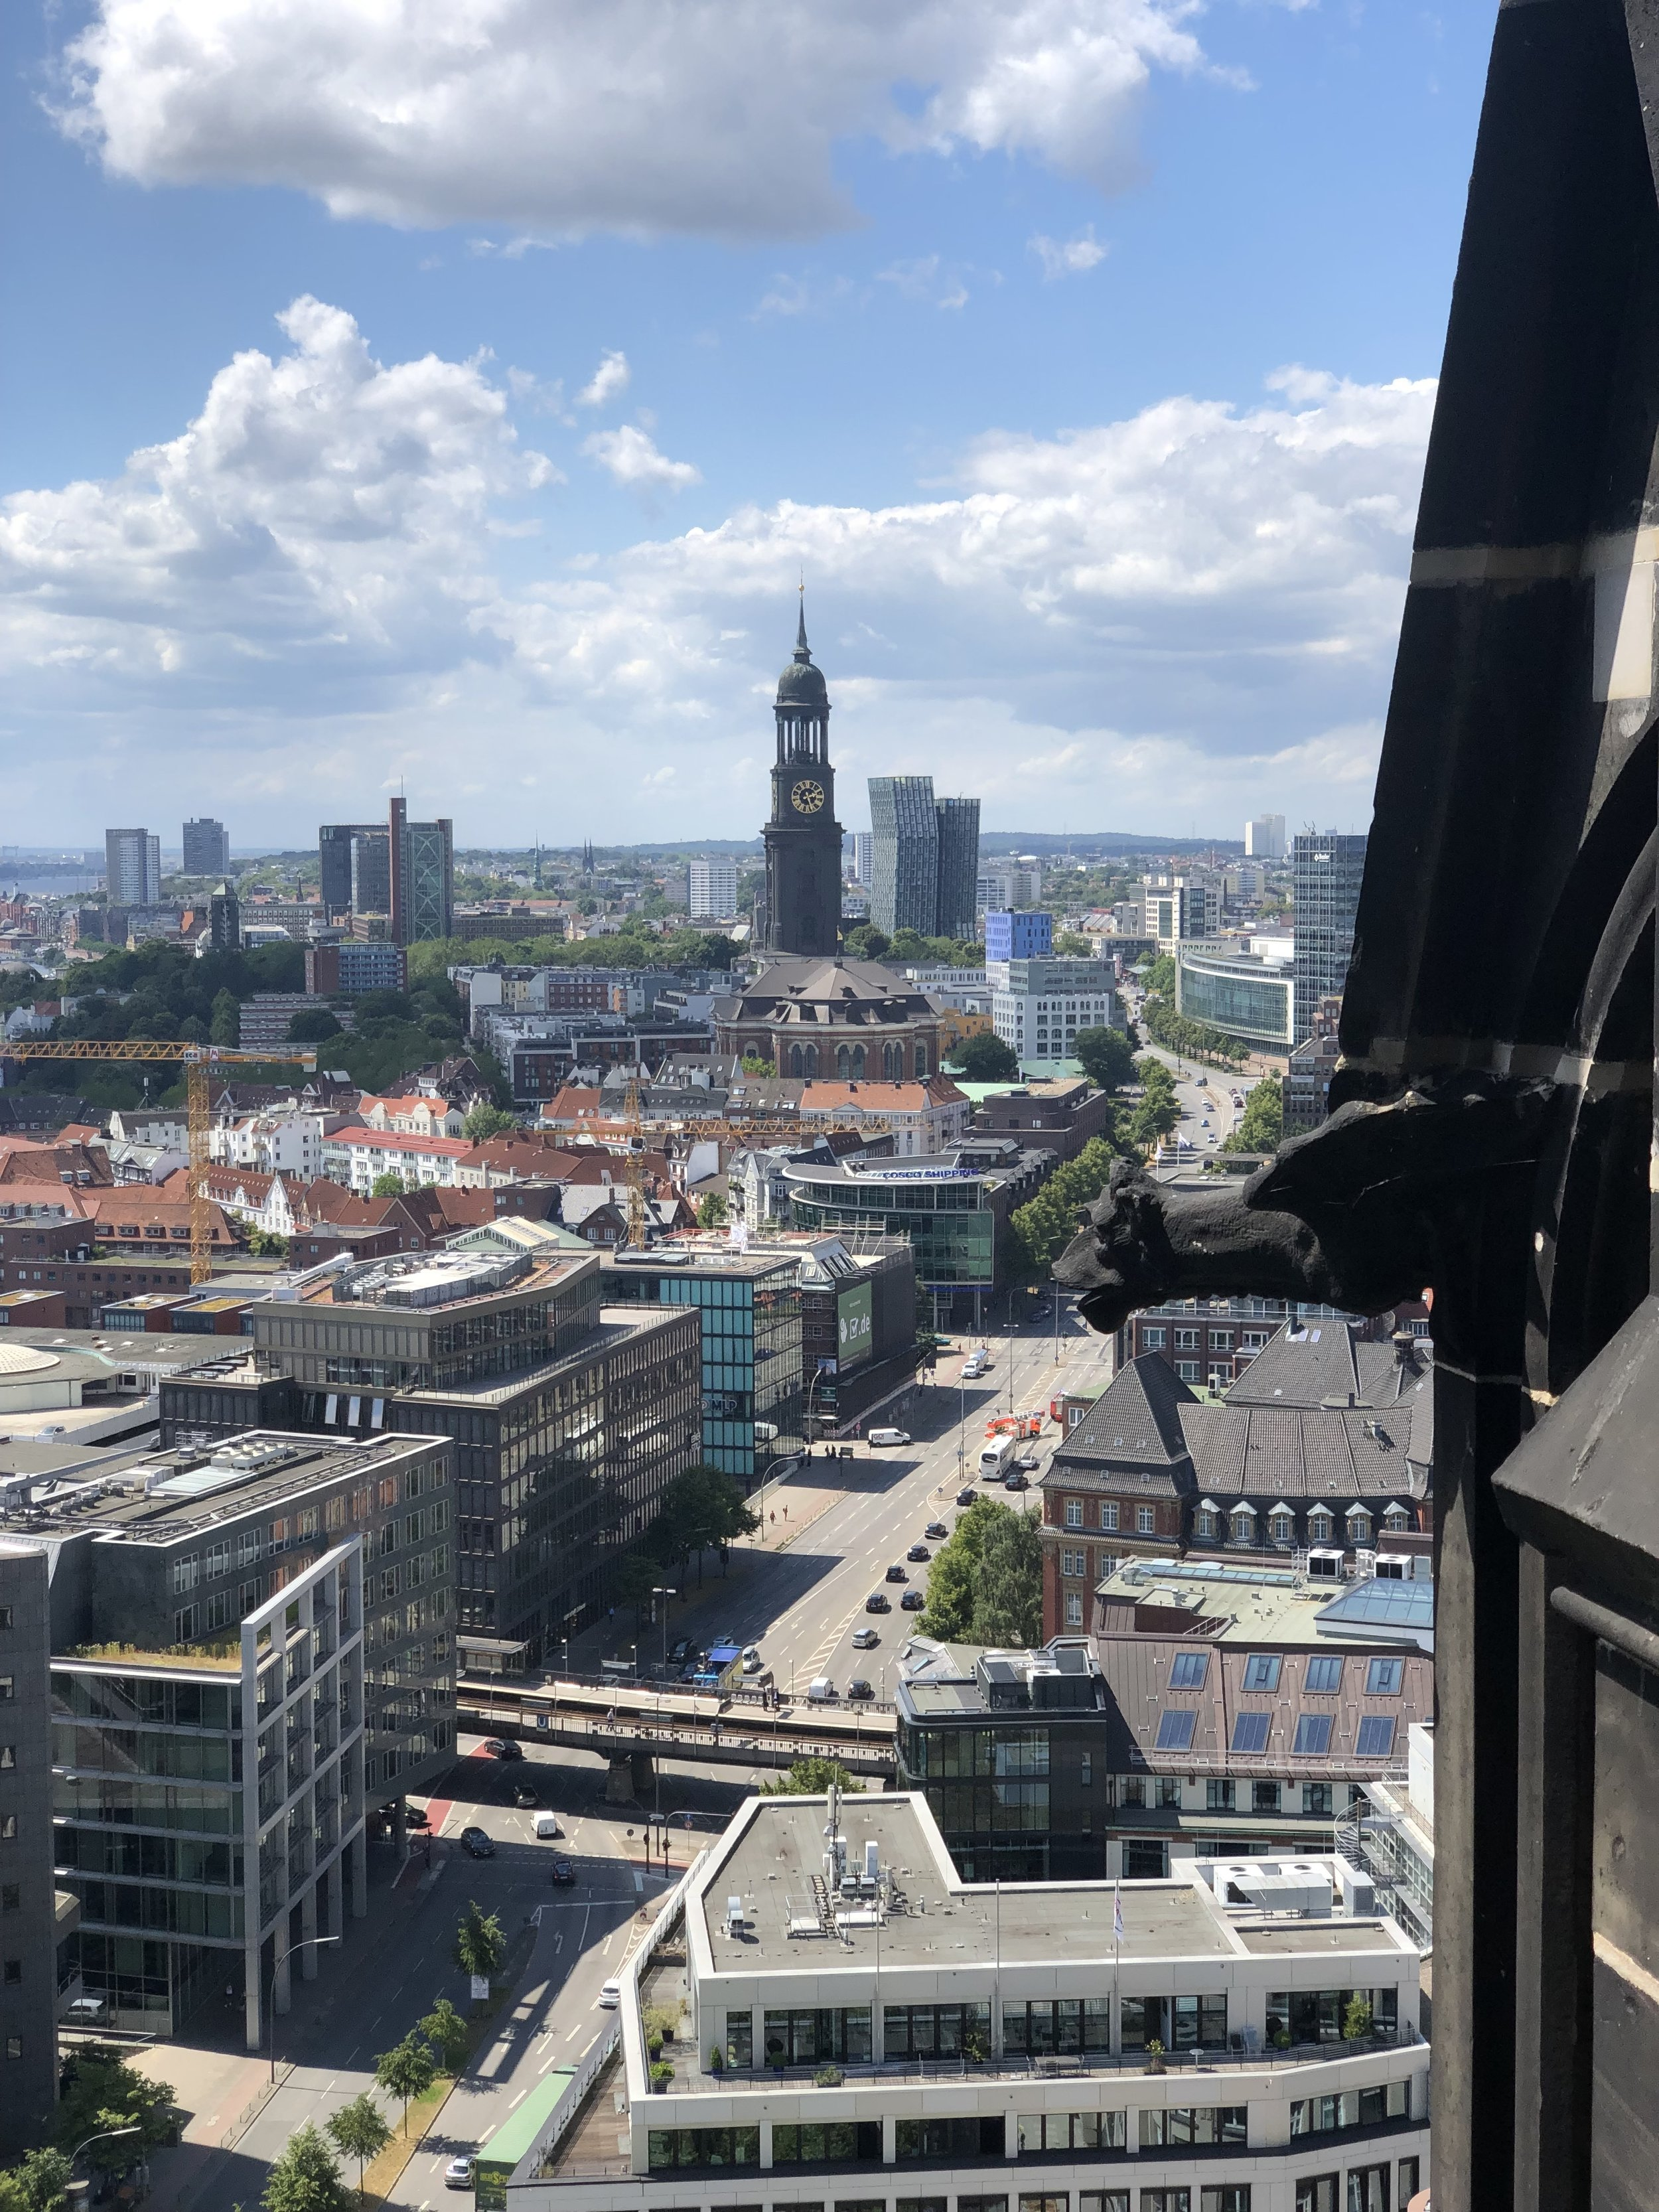 View from the church tower of Hamburg today.